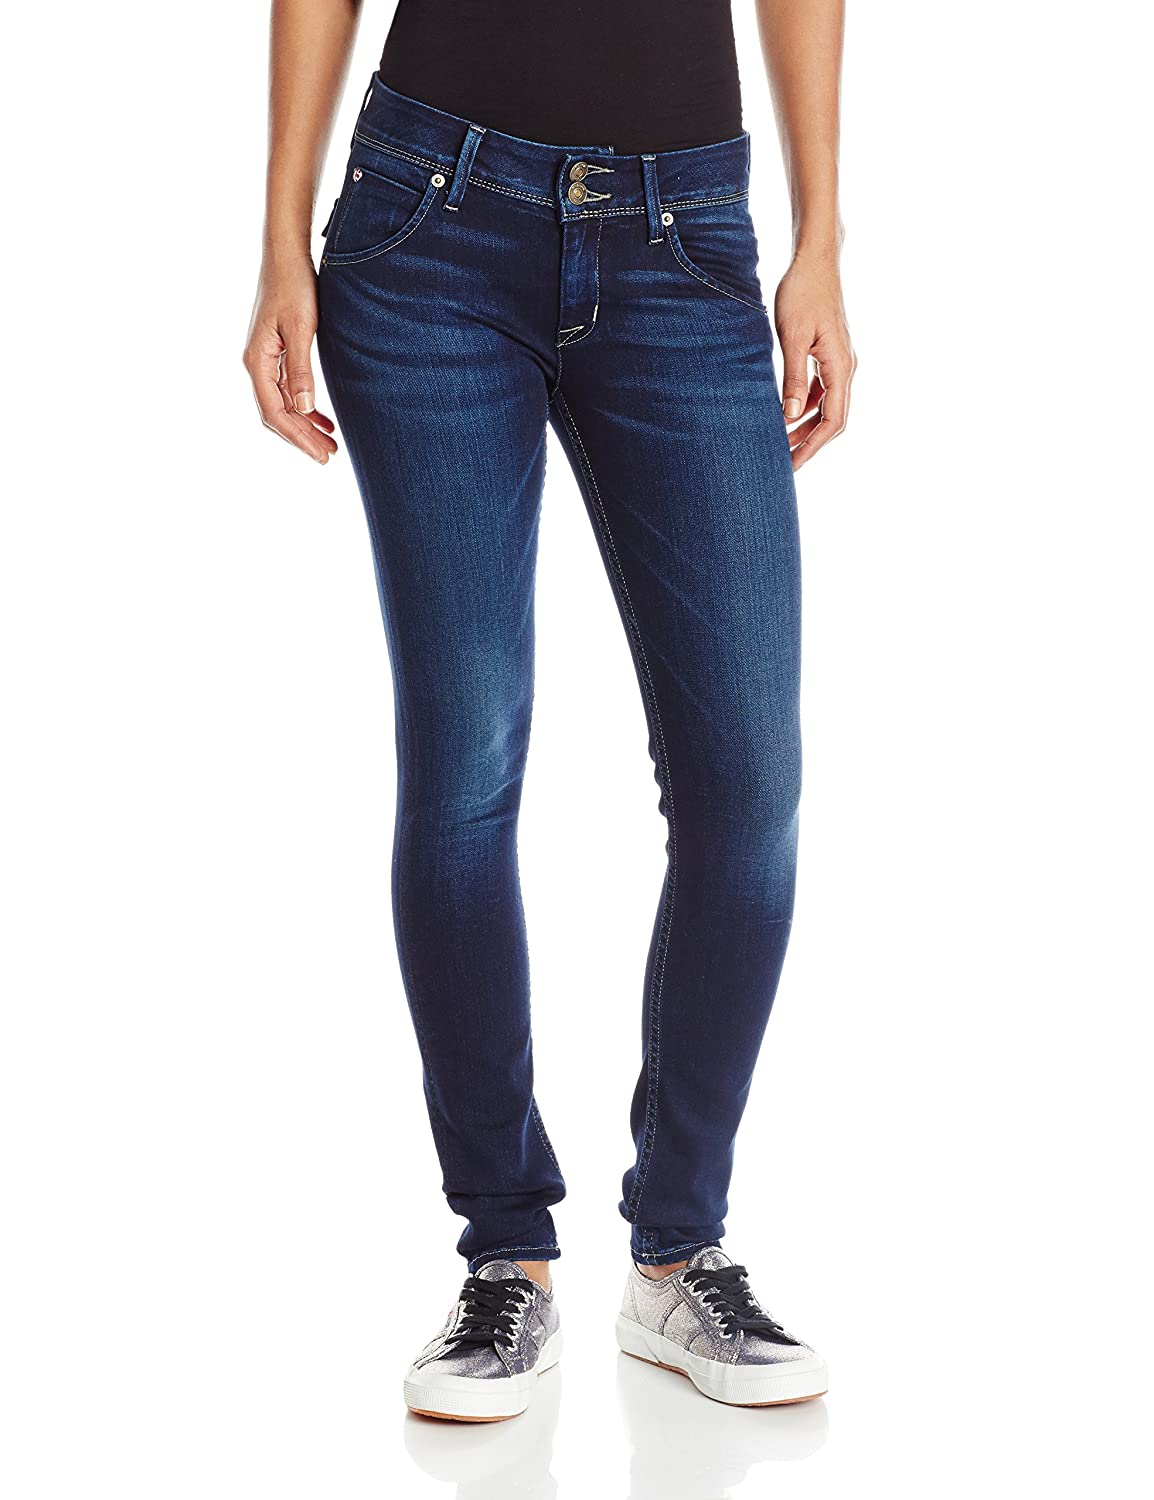 dbd964cefdb Hudson own elysiun denim gives unbelievable lift and stretch technology  recovery, along with a luxurious soft hand feel